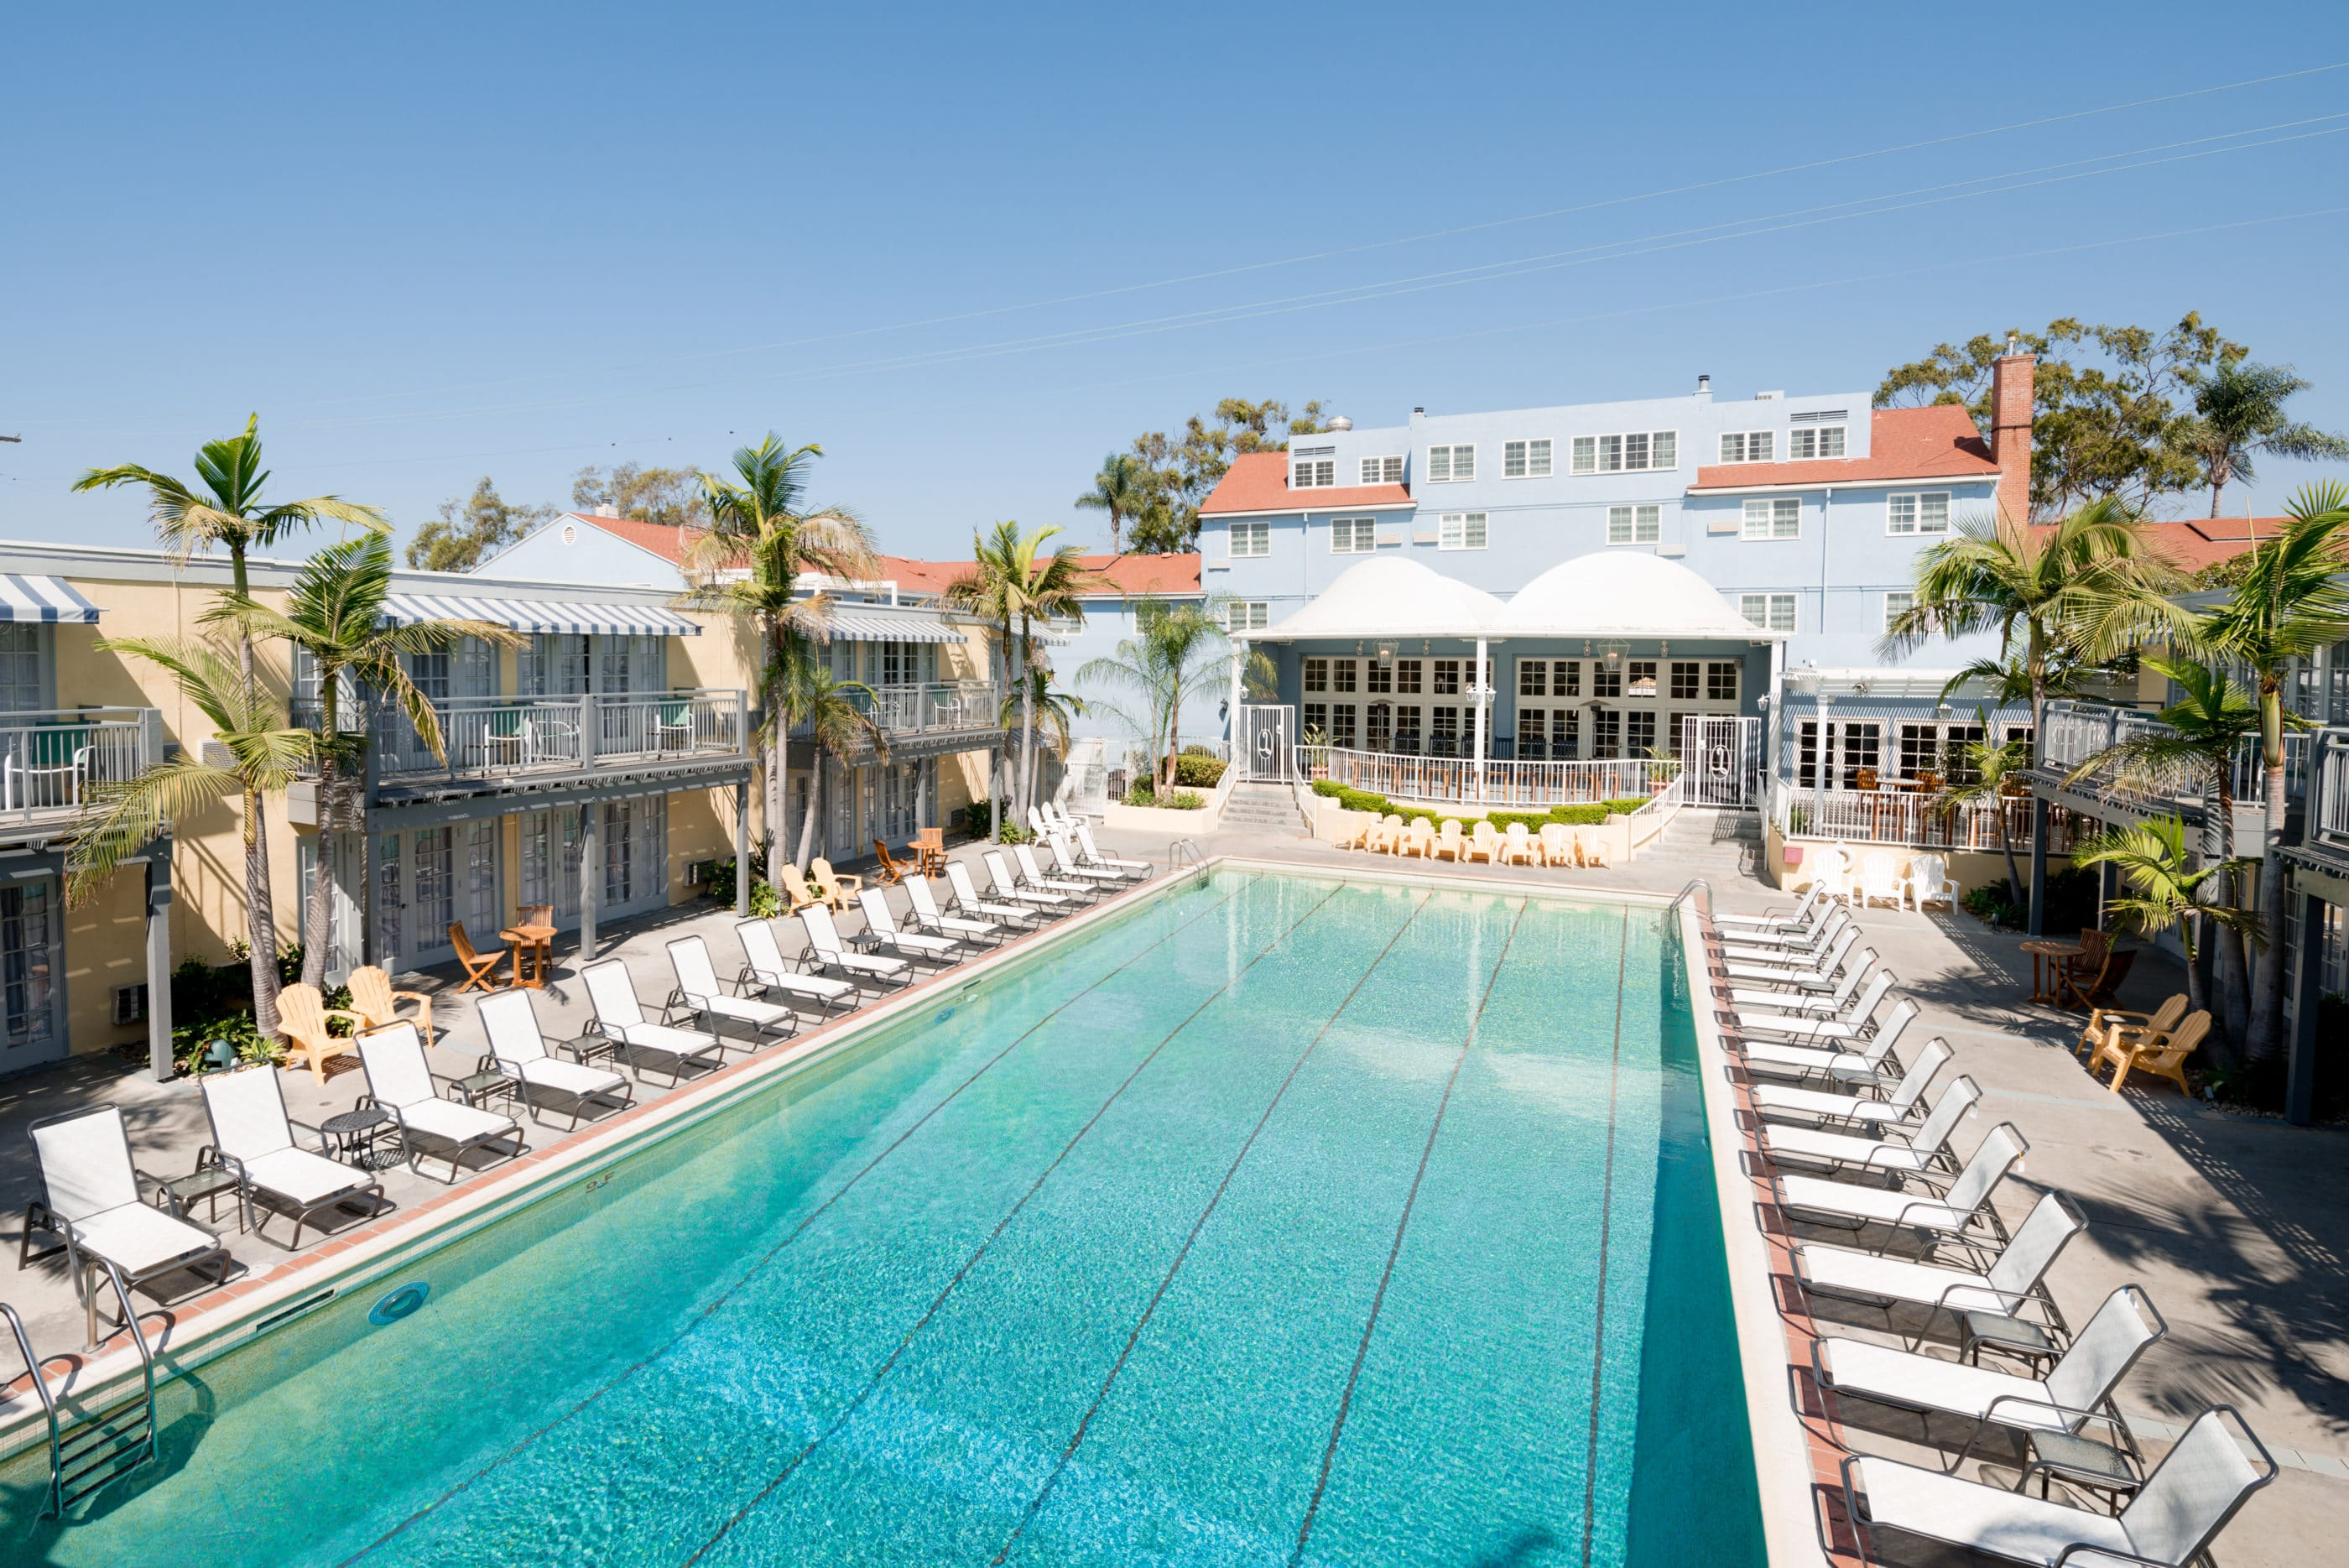 The famous pool surrounded by lounge chairs at The Lafayette Hotel, Swim Club and Bungalows in San Diego.